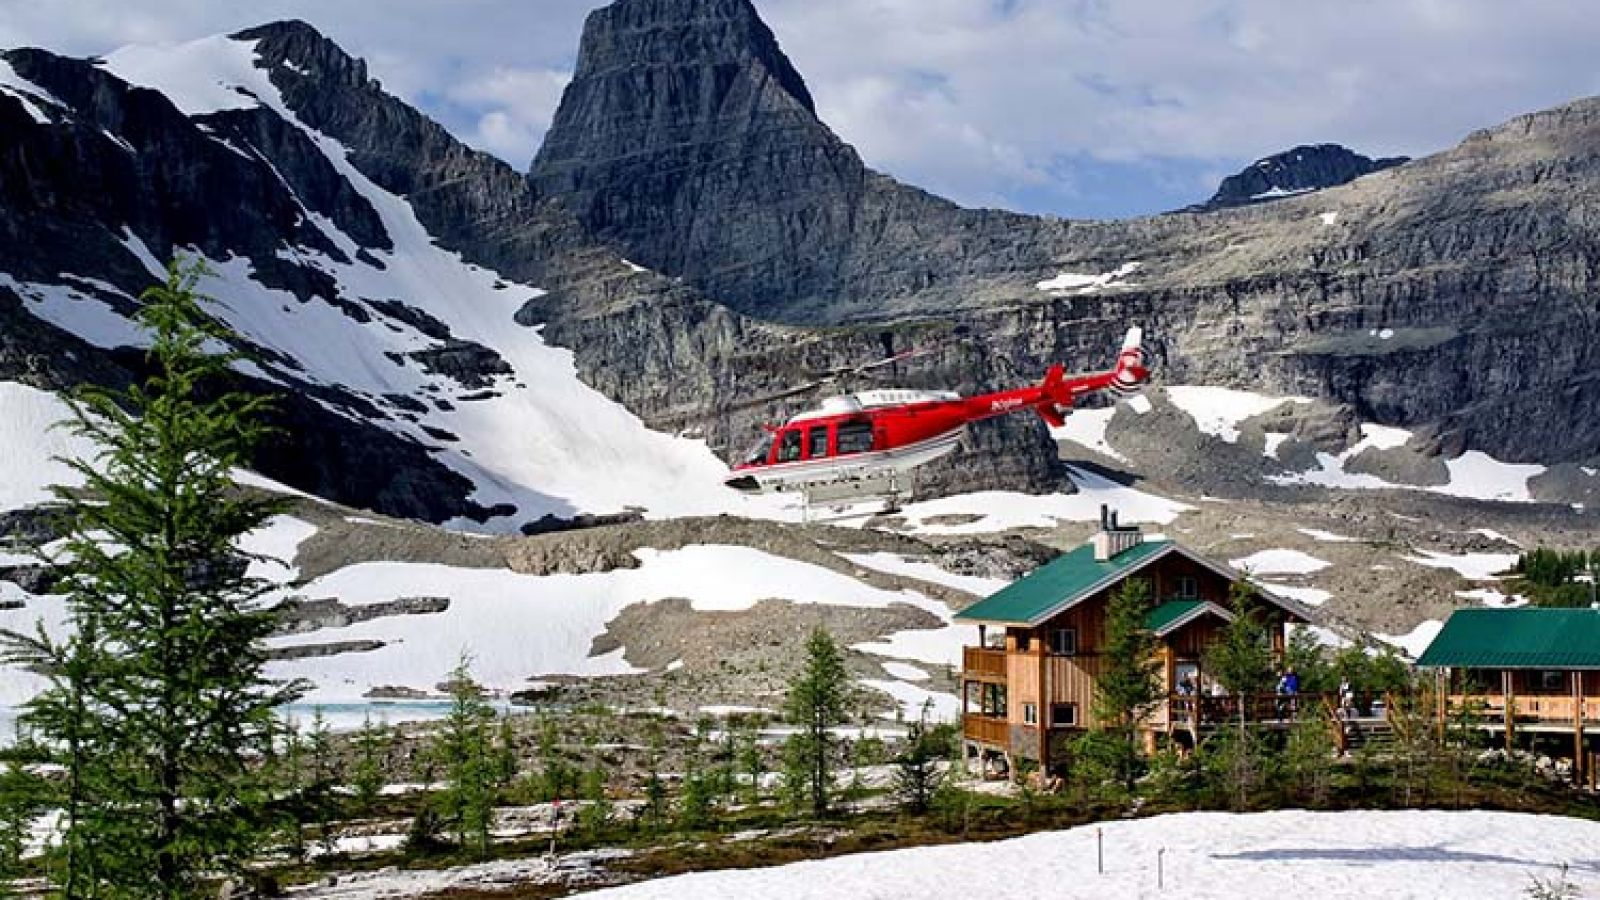 Helicopter access to spectacular guided outings.